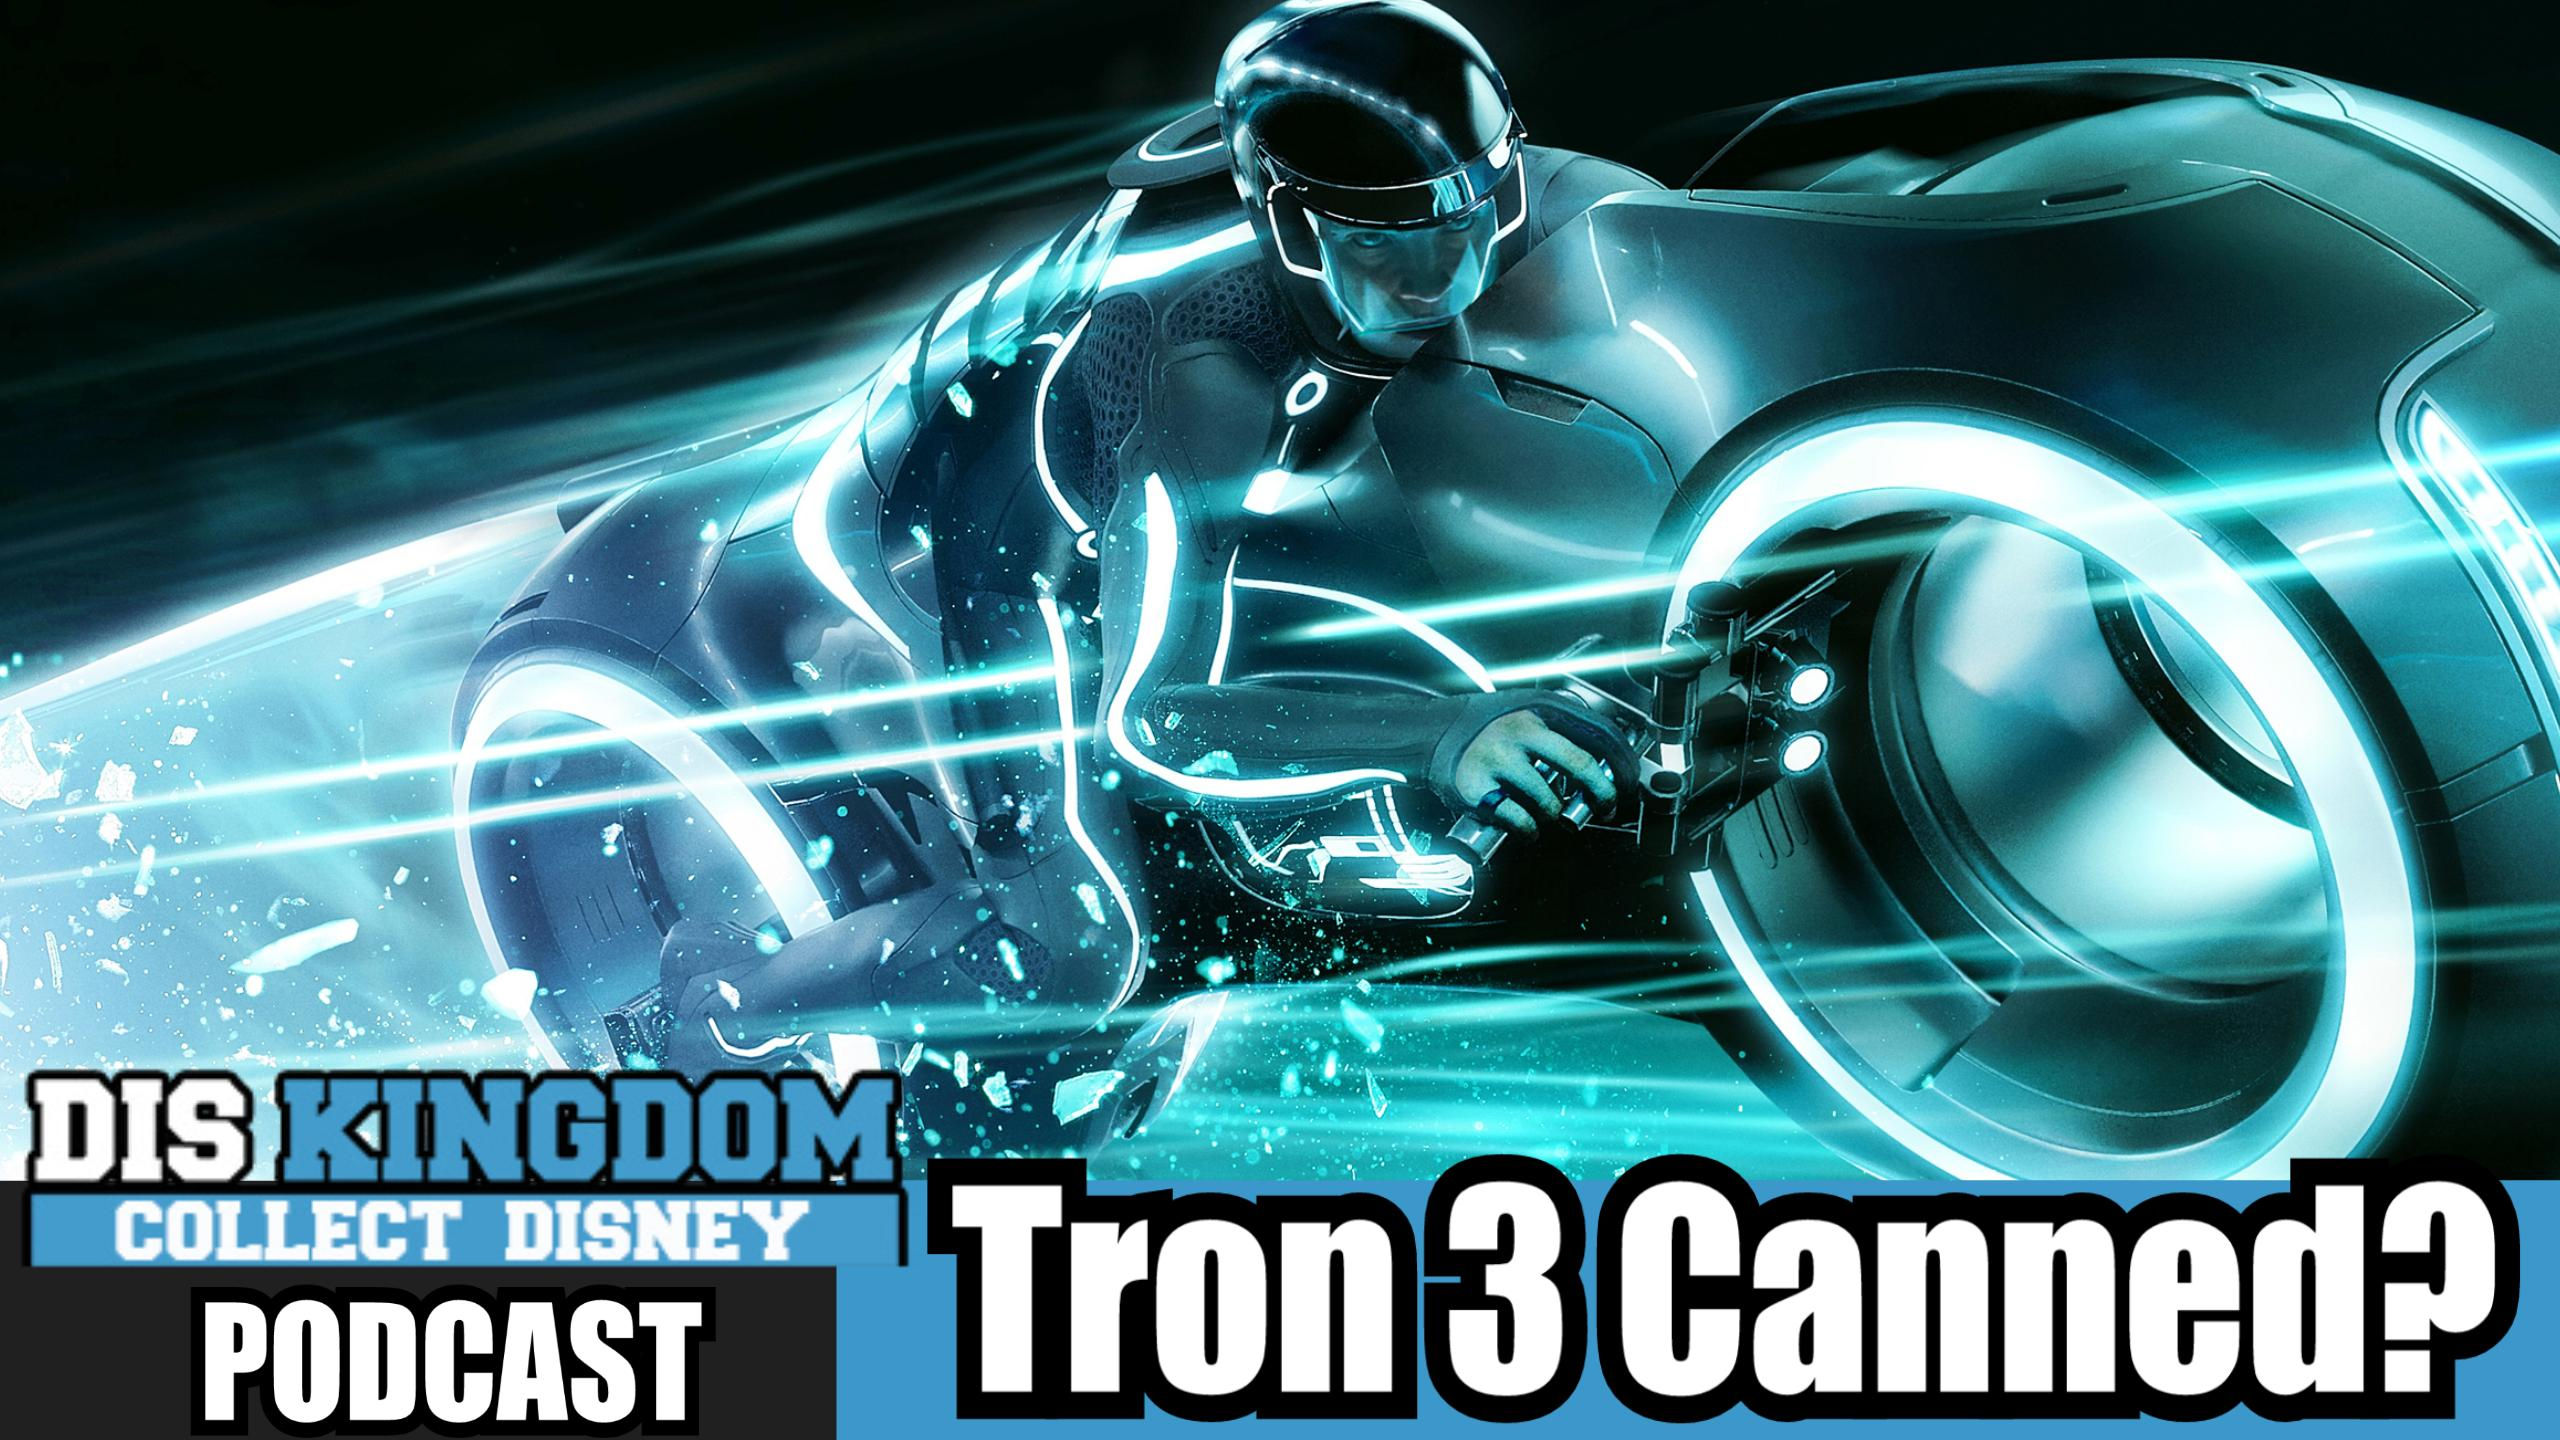 Tron 3 Cancelled – DK Podcast